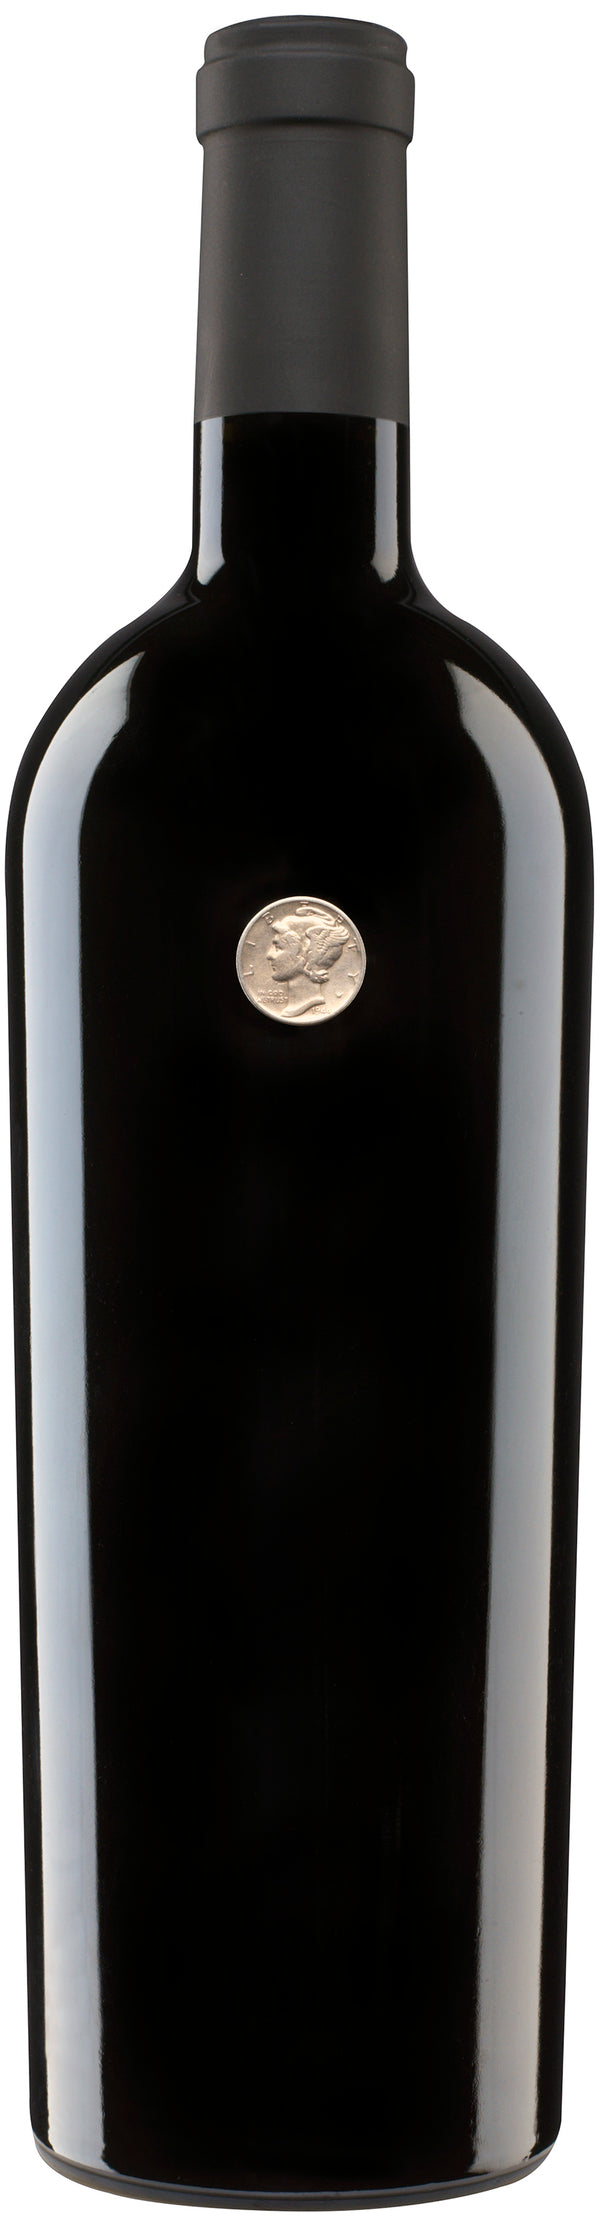 Mercury Head Cabernet Sauvignon 2017 750ml